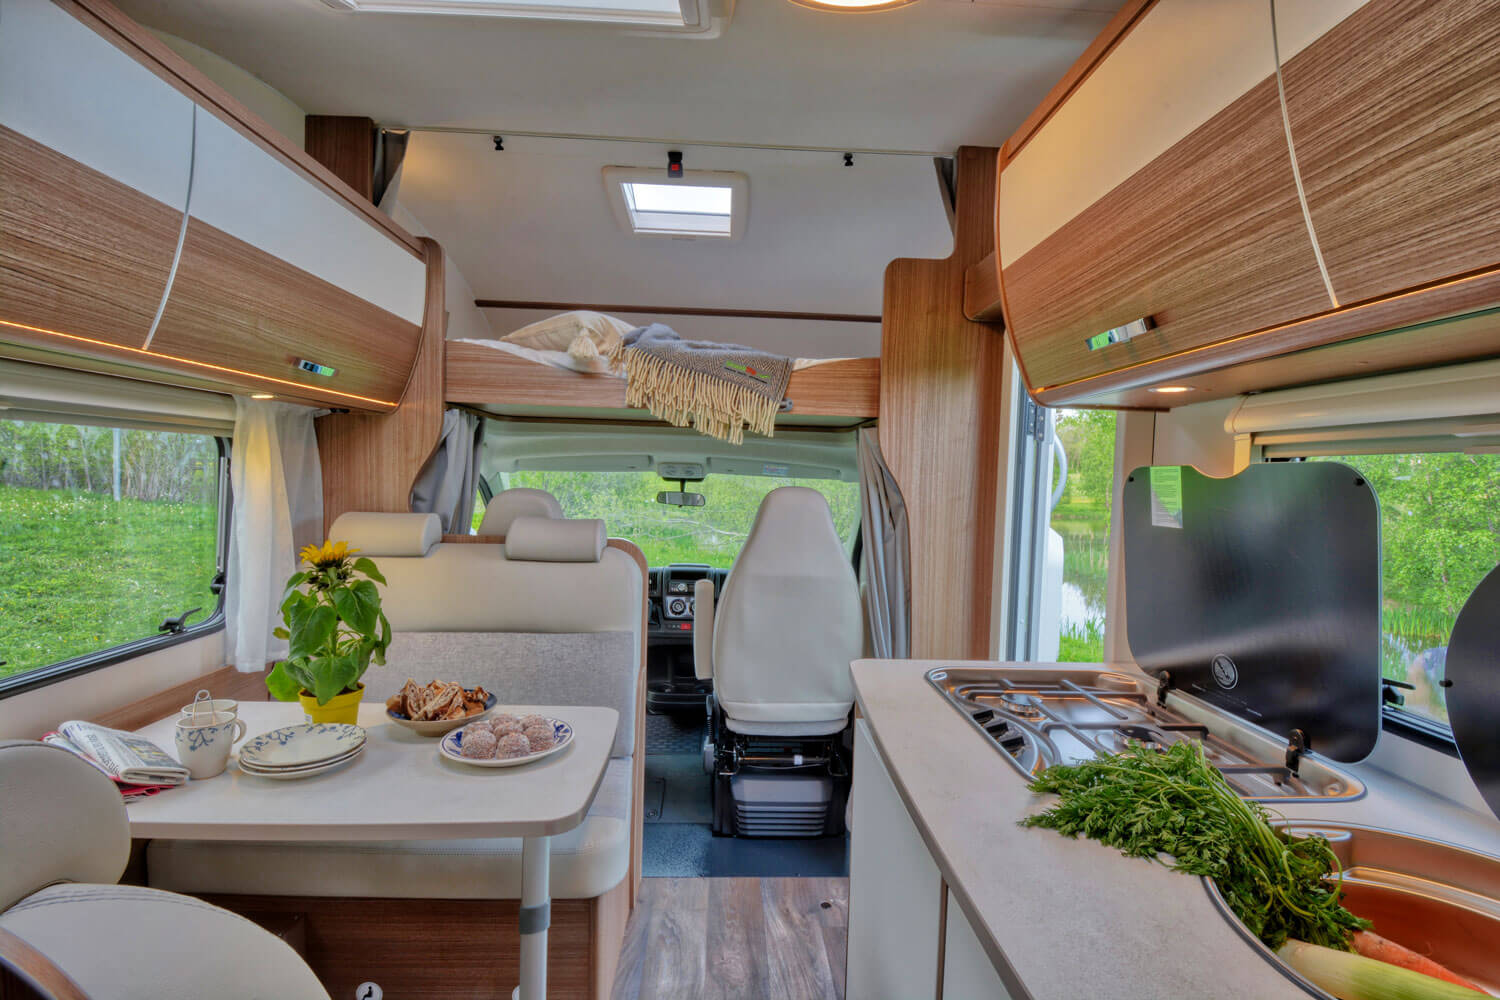 SkandiTrip family motorhome comfortable doublebeds in alcove